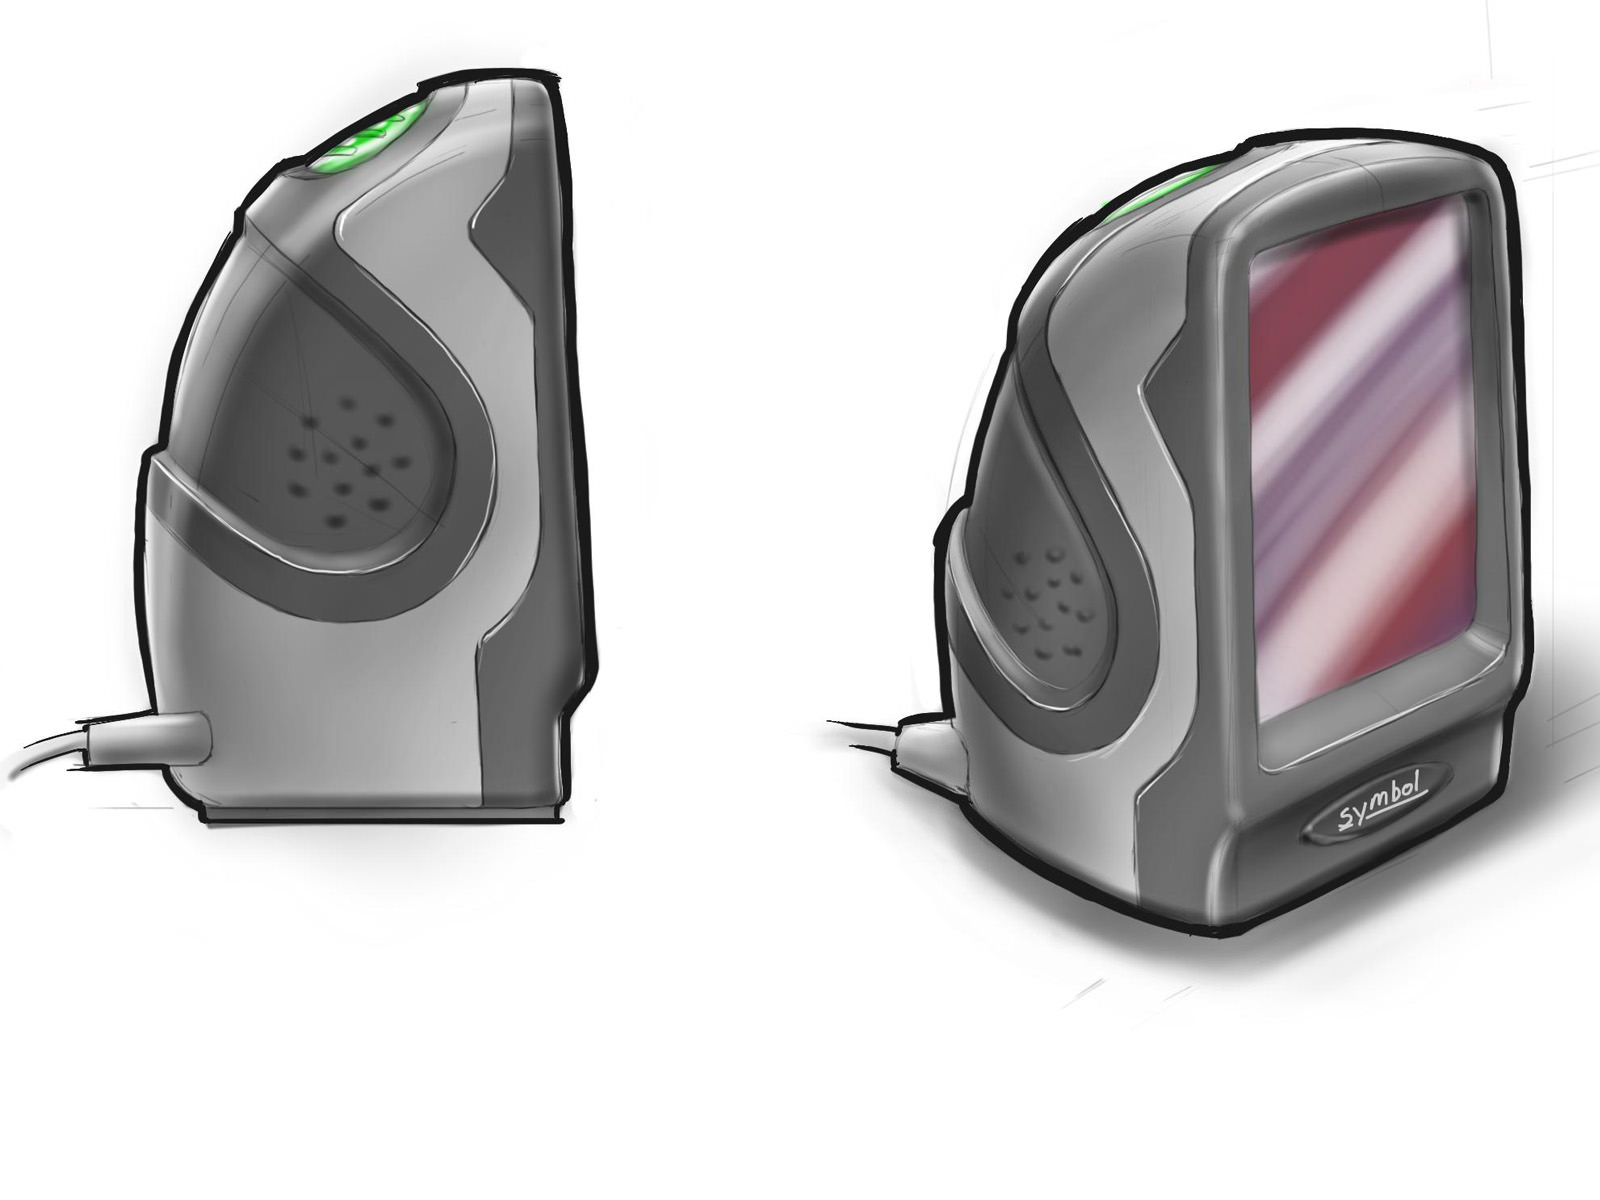 Early concept sketch for the DS9208 with a large flat scan window and rounded white and grey housing